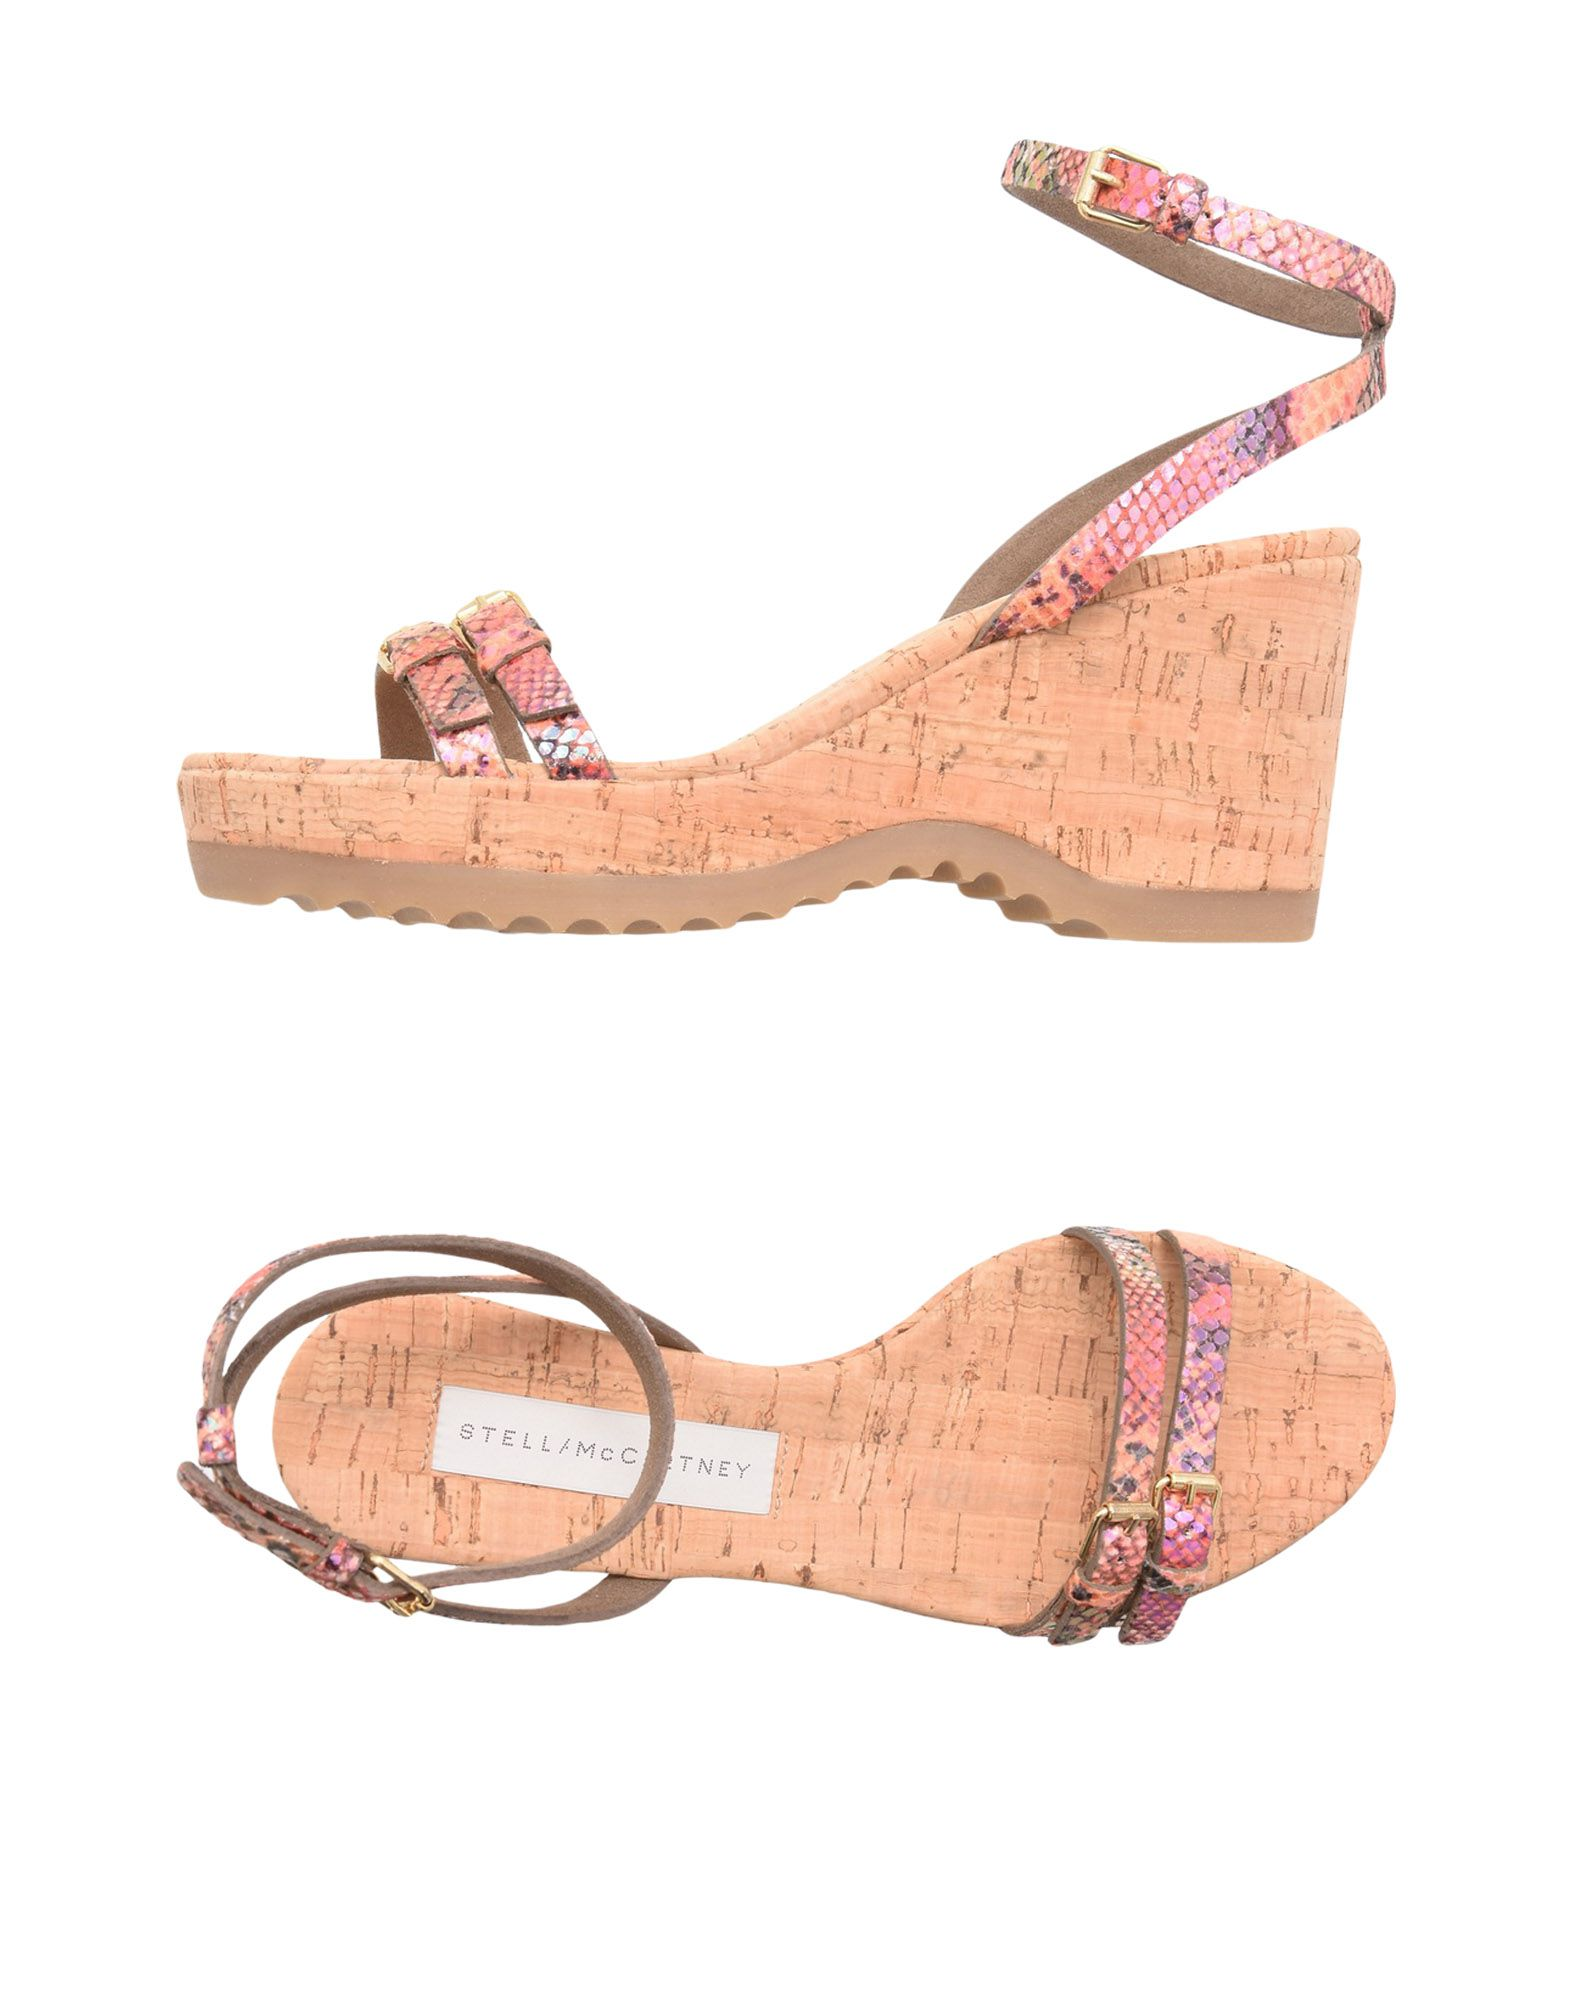 Stella Mccartney Sandals - Women Stella  Mccartney Sandals online on  Stella United Kingdom - 11484459ES afc07f